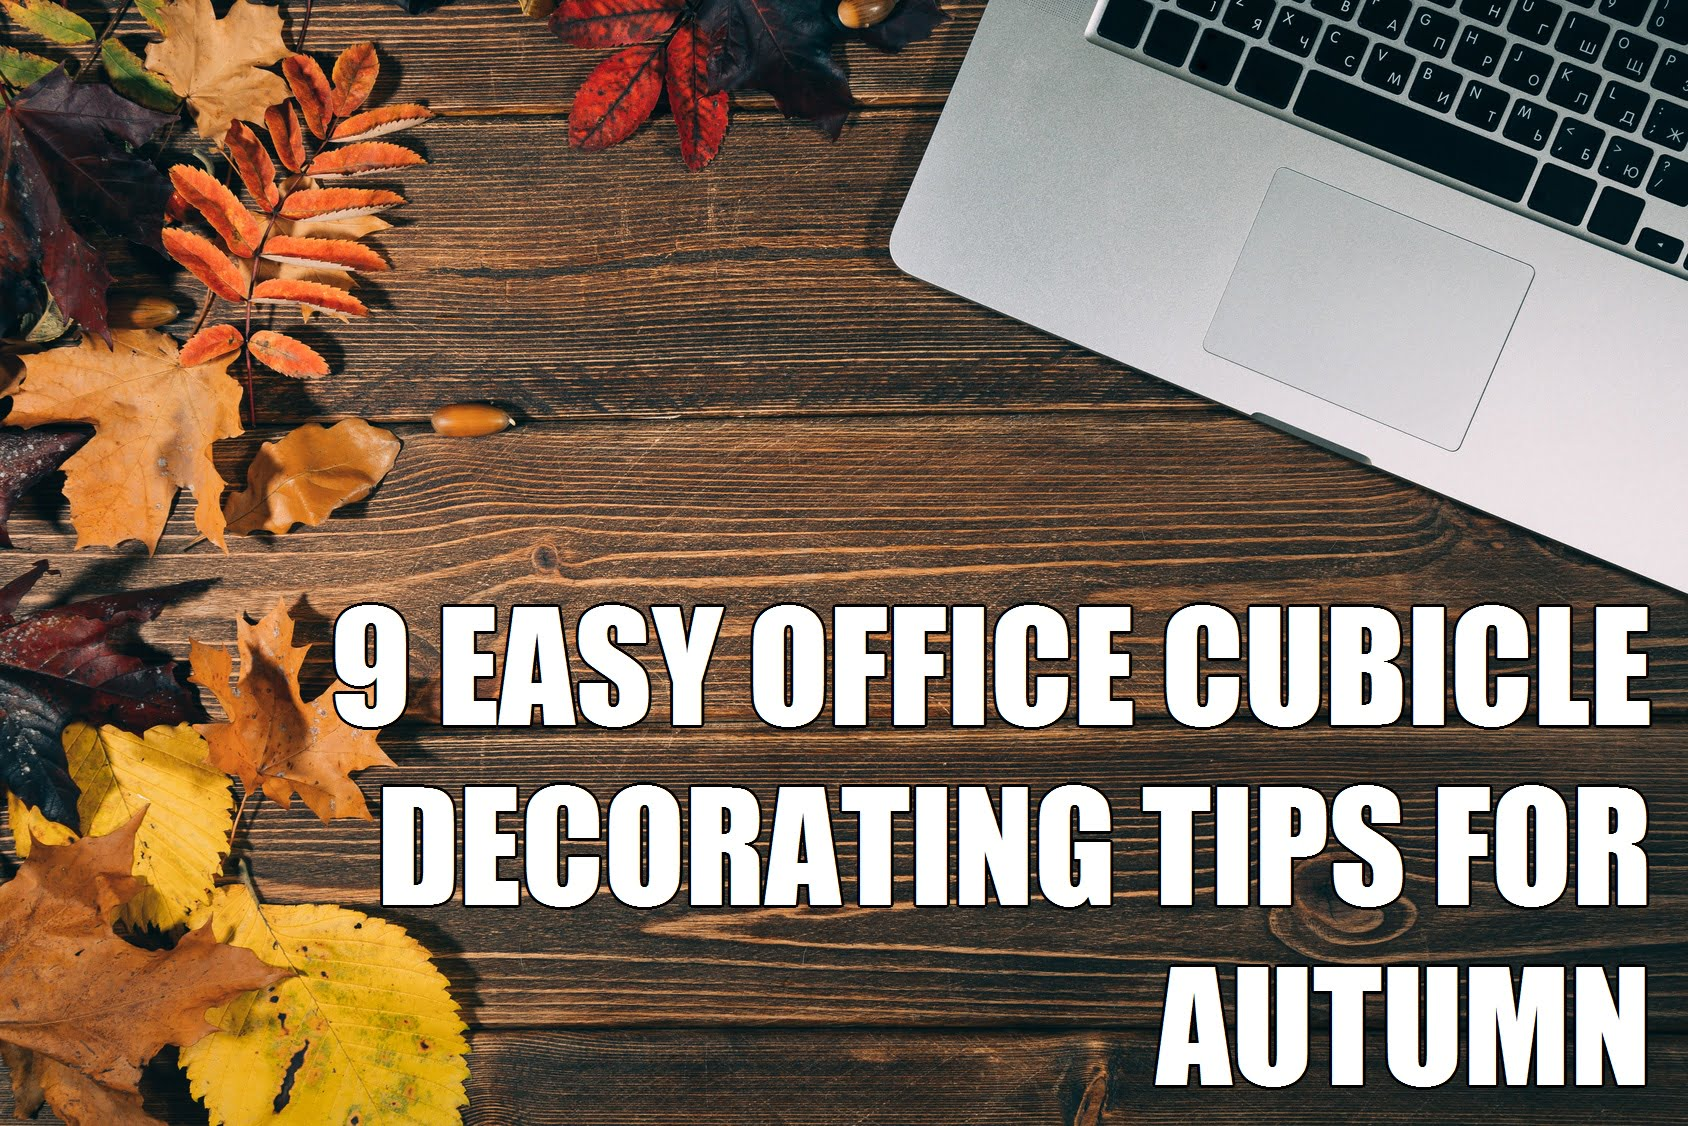 9 Easy Office Cubicle Decorating Tips For Autumn